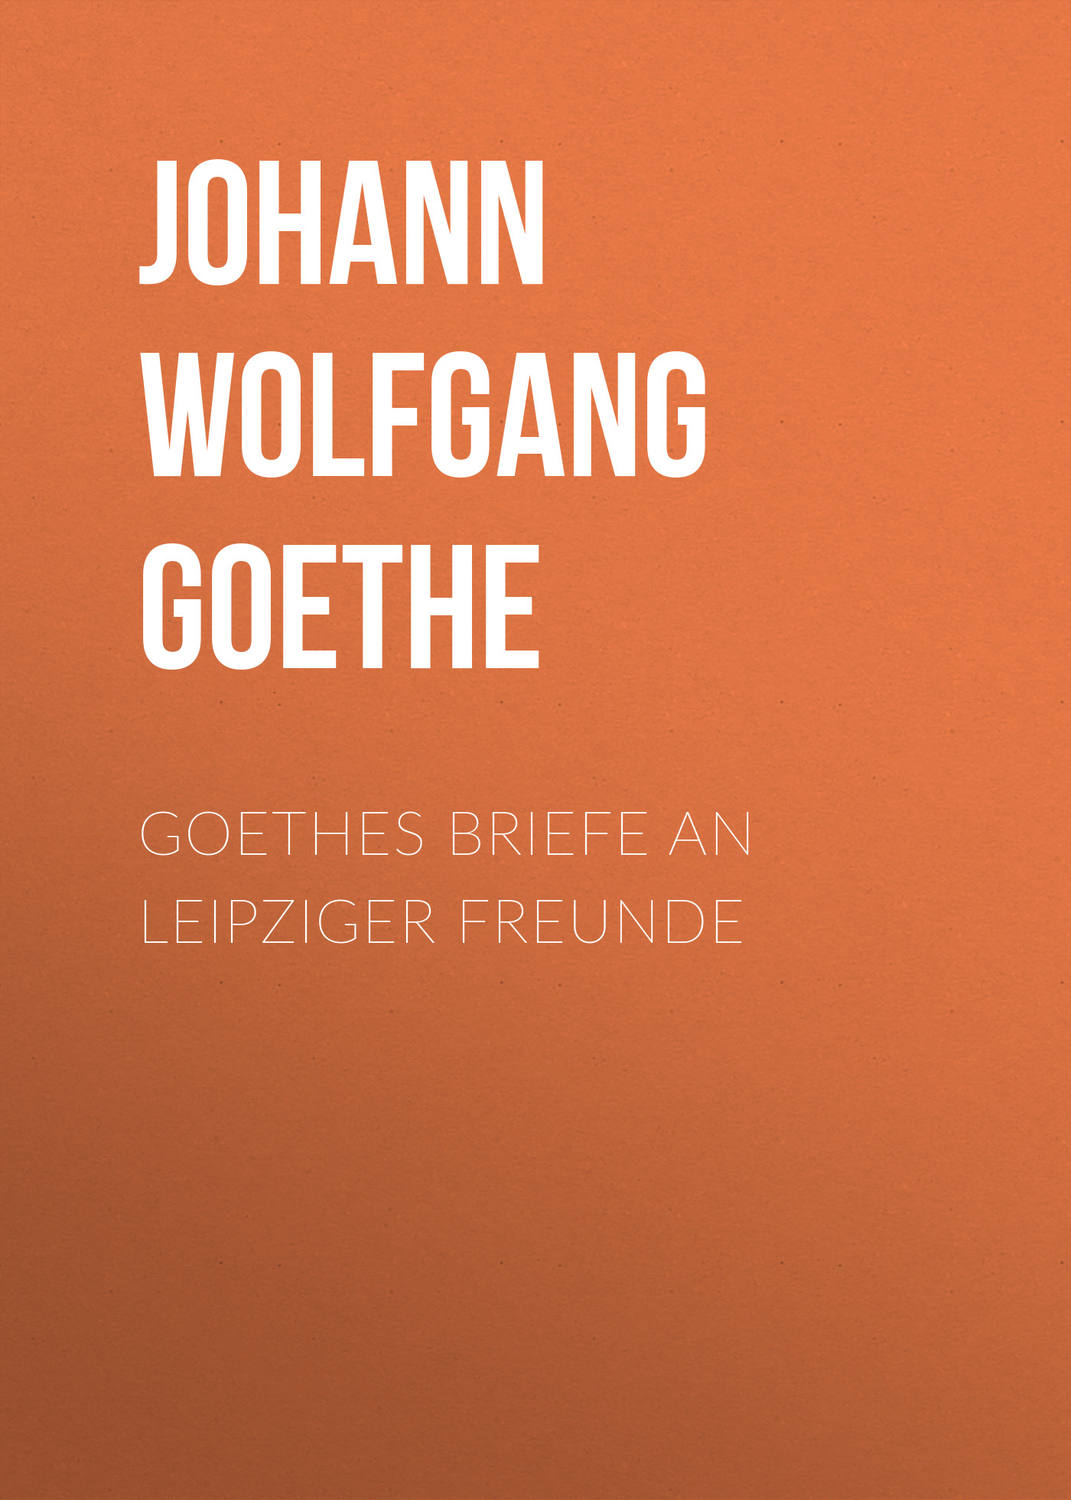 language novel and wolfgang von goethe Johann wolfgang von goethe was one of the rare giants of world literature throughout a long and full life he demonstrated his prolific genius in many different areas goethe composed literary works and established artistic principles that had a profound influence on his contemporaries throughout.